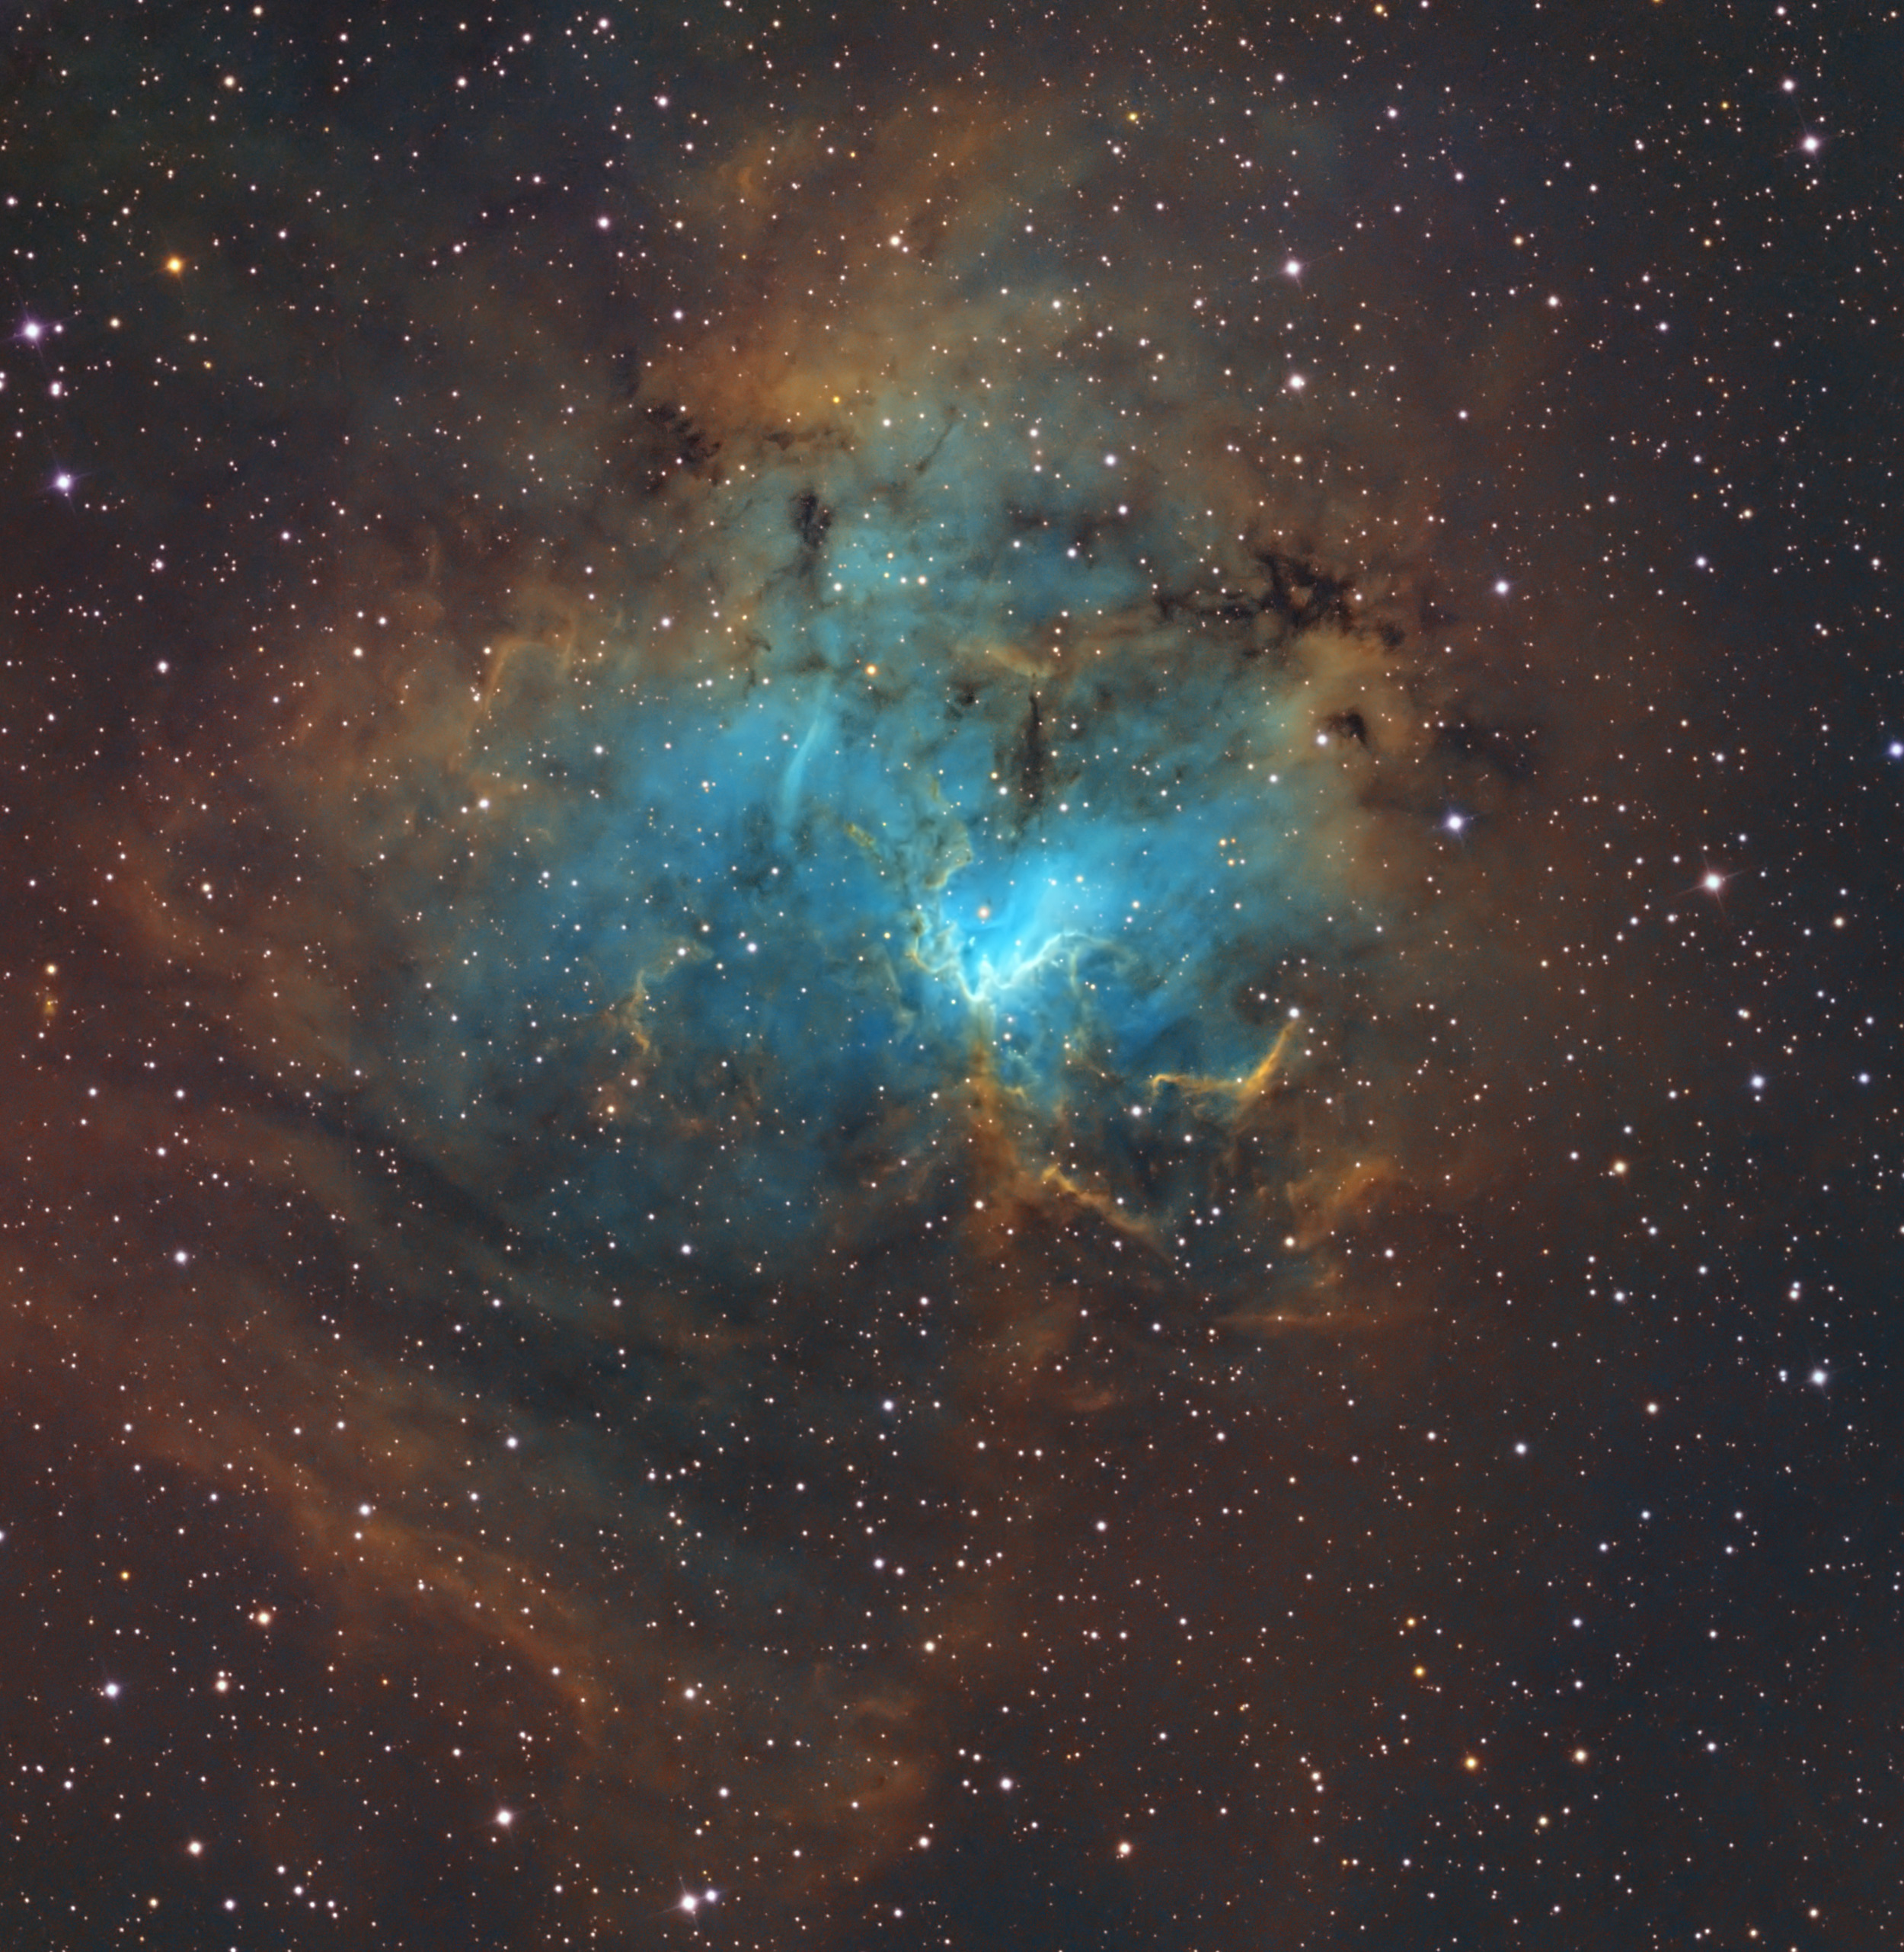 Cool Nebula Glows Blue in Stunning Night Sky Photo